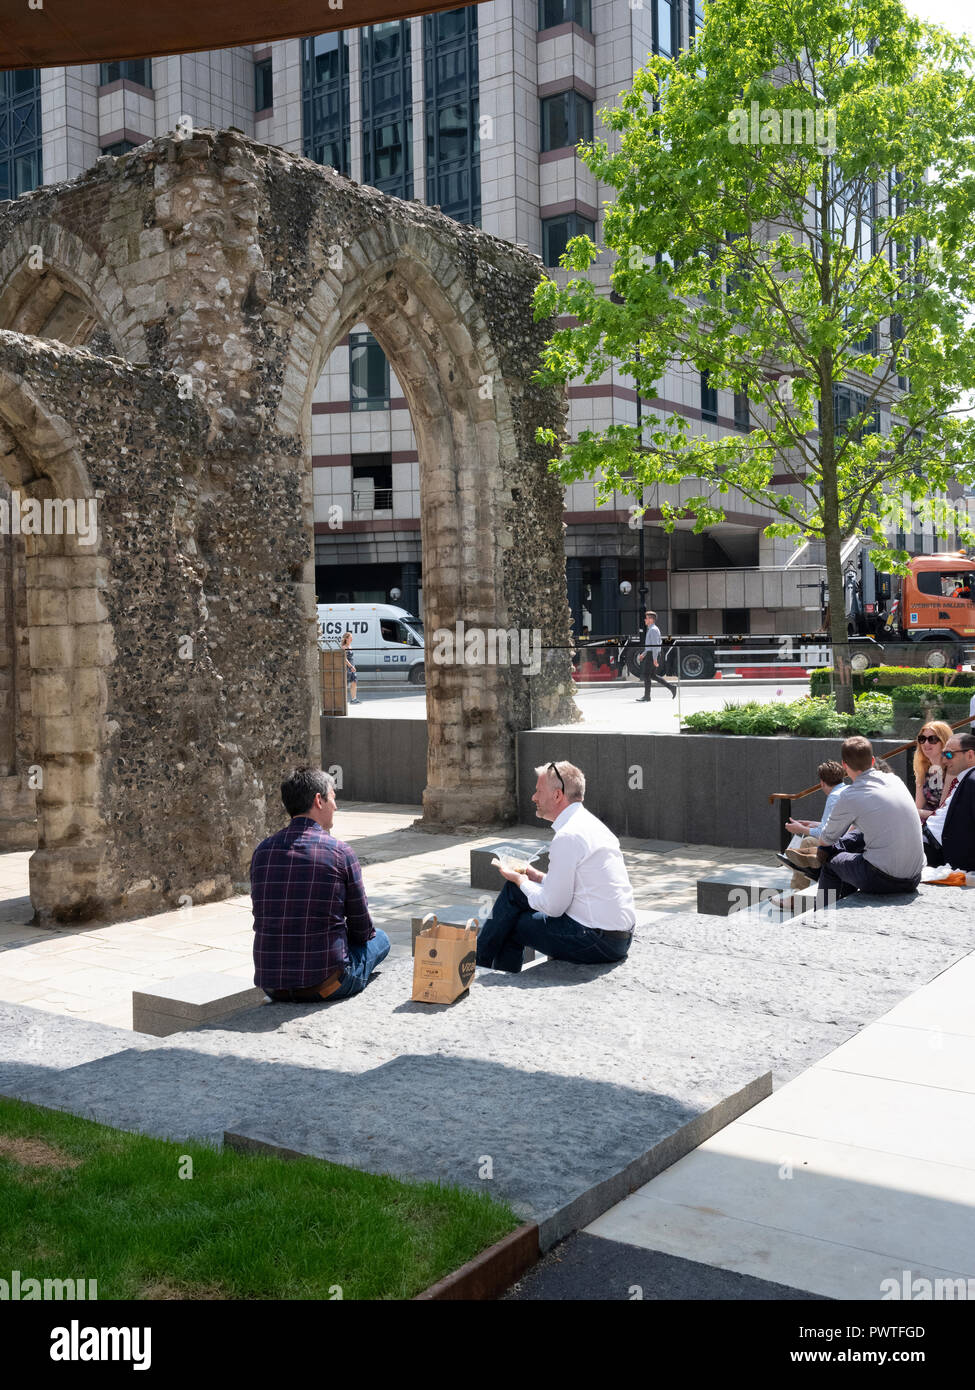 The ruins of St Alphage church on London Wall, reinstated during the redevelopment of the London wall in 2018 - Stock Image